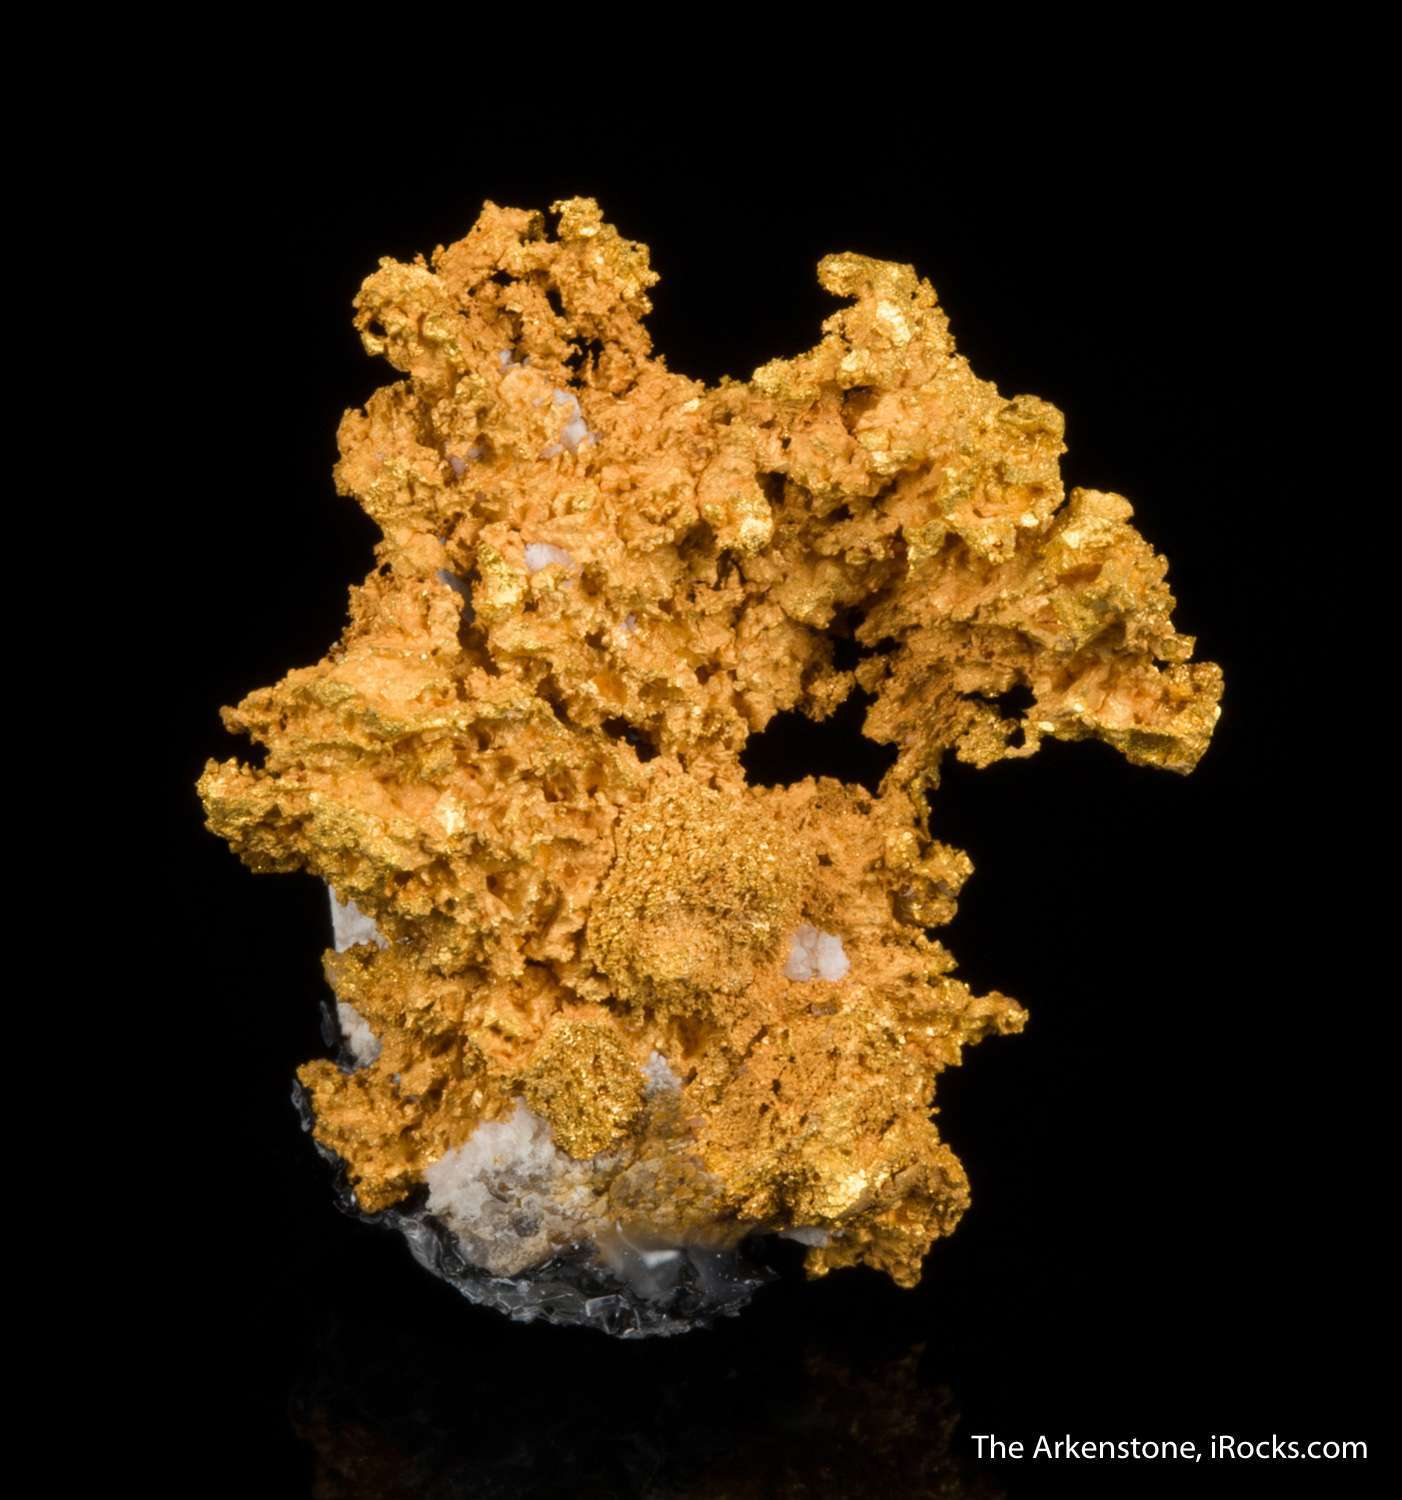 Arizona golds rarely seen sale This rare locality gold specimen cute